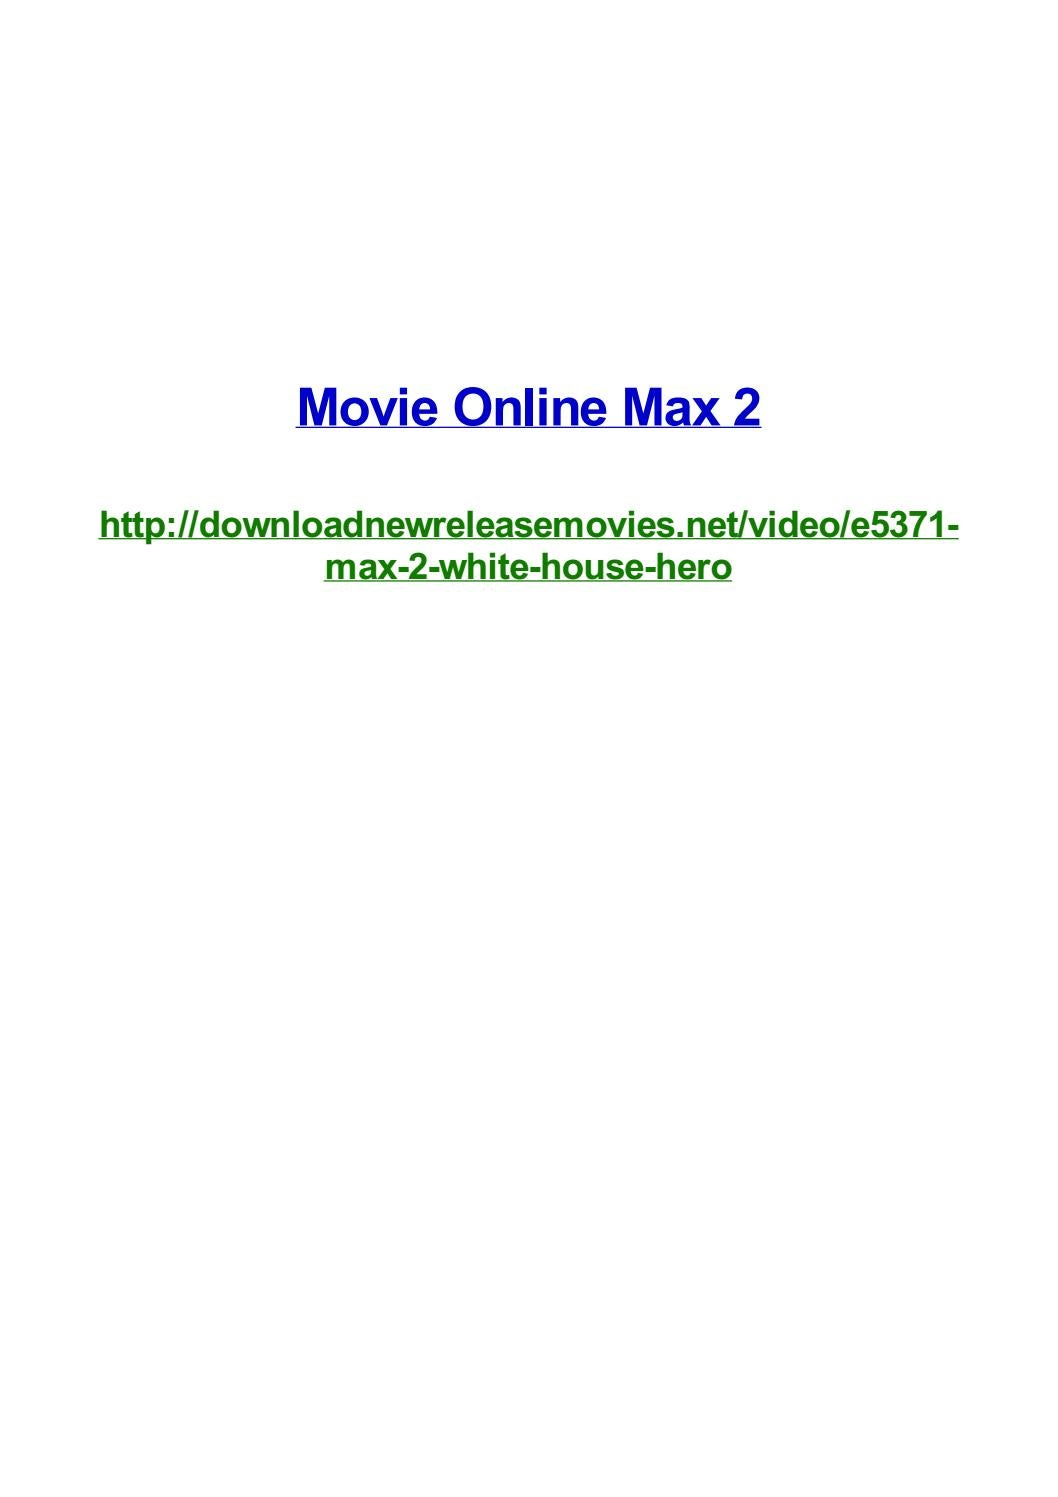 Movie Online Max 2 By Frank Seamons Issuu